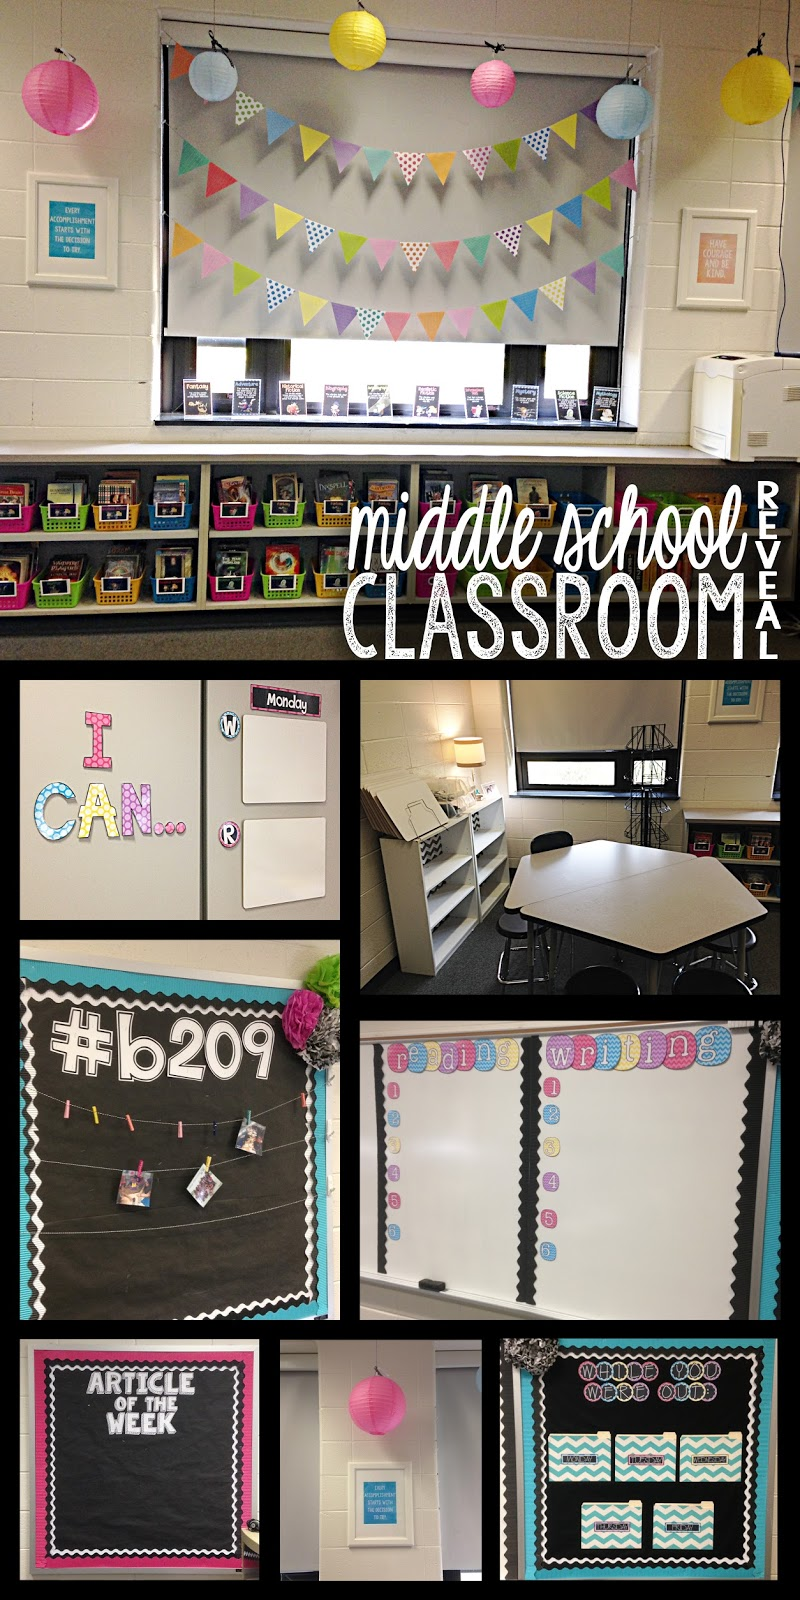 Classroom Theme Ideas For Middle School ~ Musings from the middle school classroom reveal